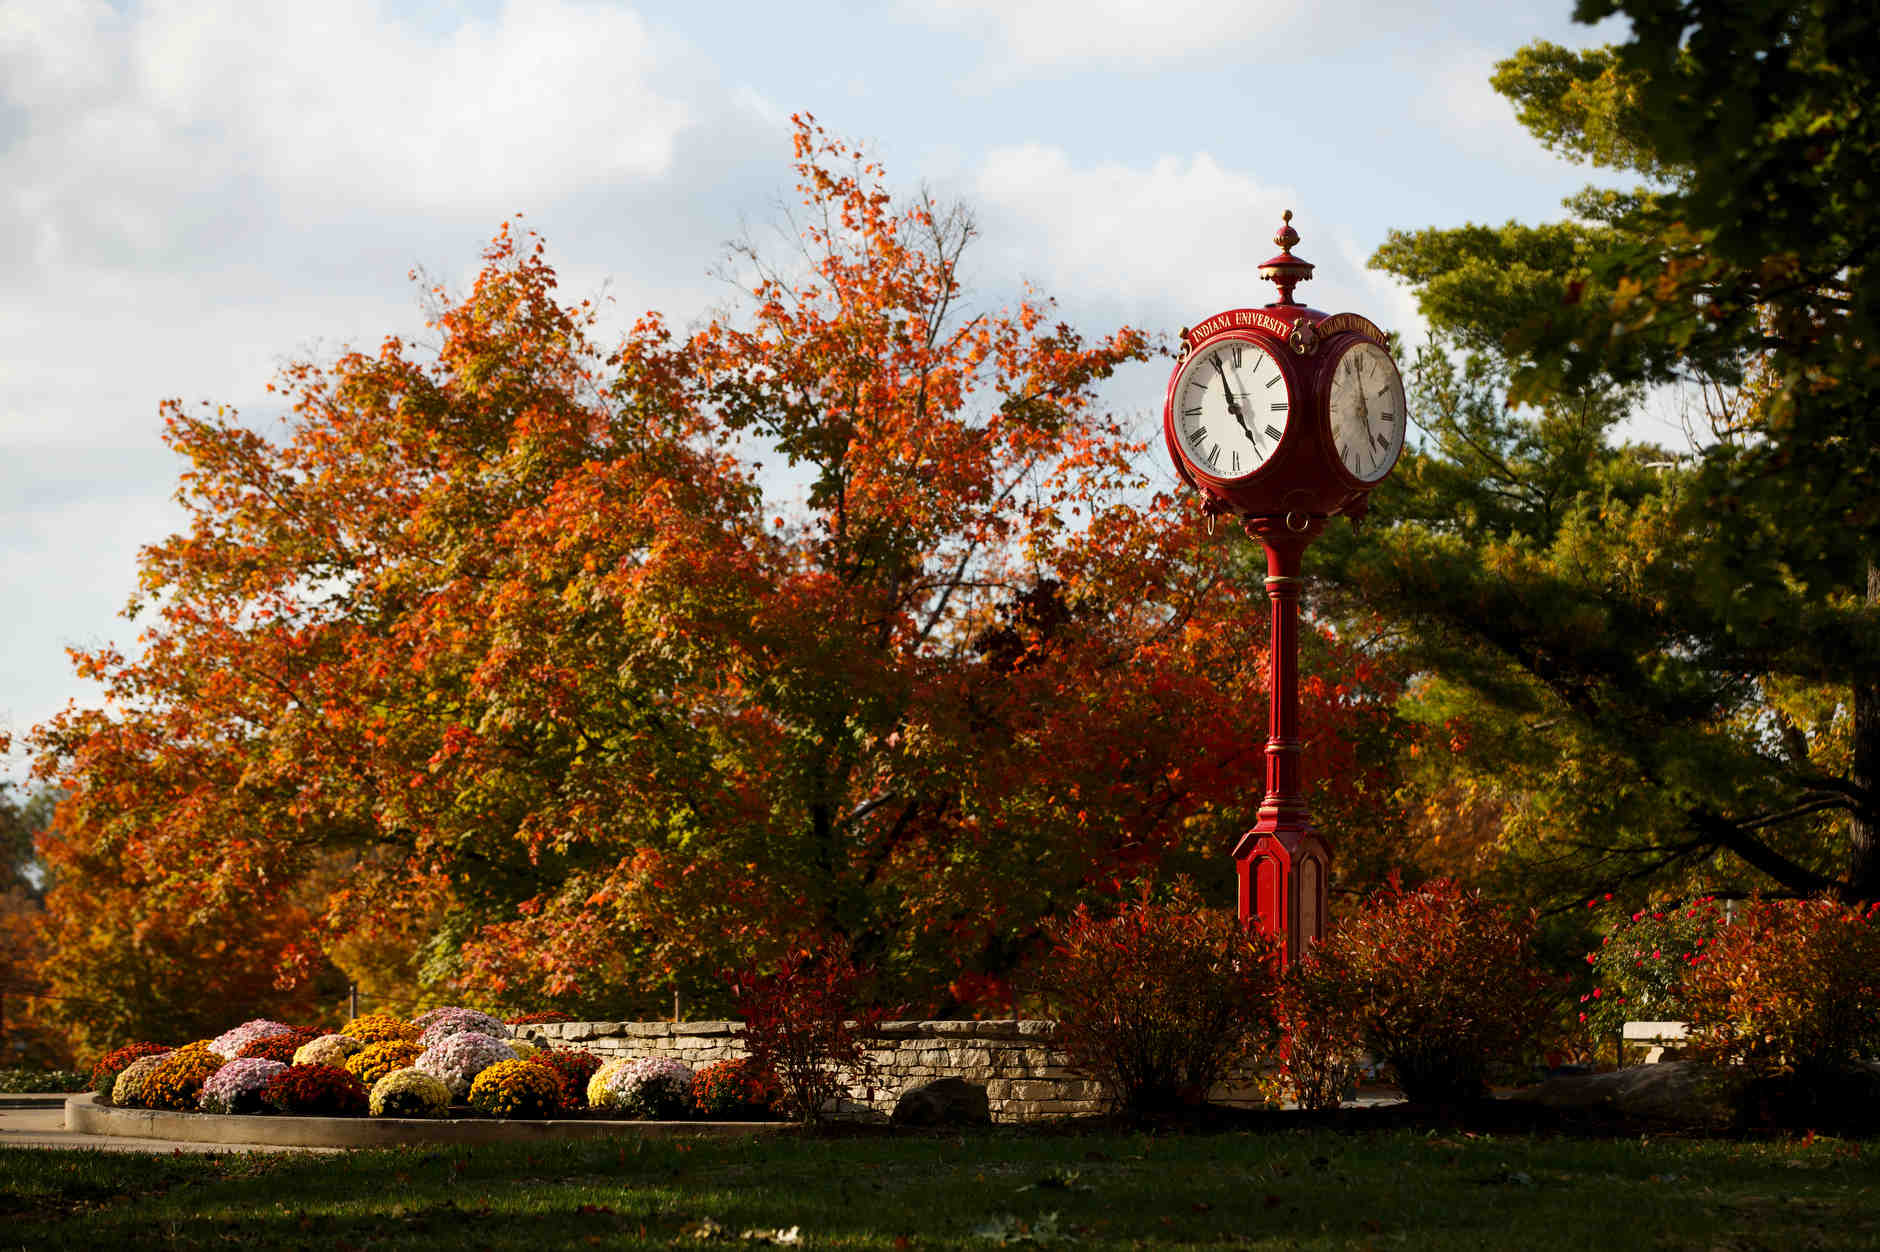 Fall foliage is pictured behind one of Indiana University's iconic red clocks near Woodburn Hall at IU Bloomington on Tuesday, Oct. 22, 2019. (James Brosher/Indiana University)